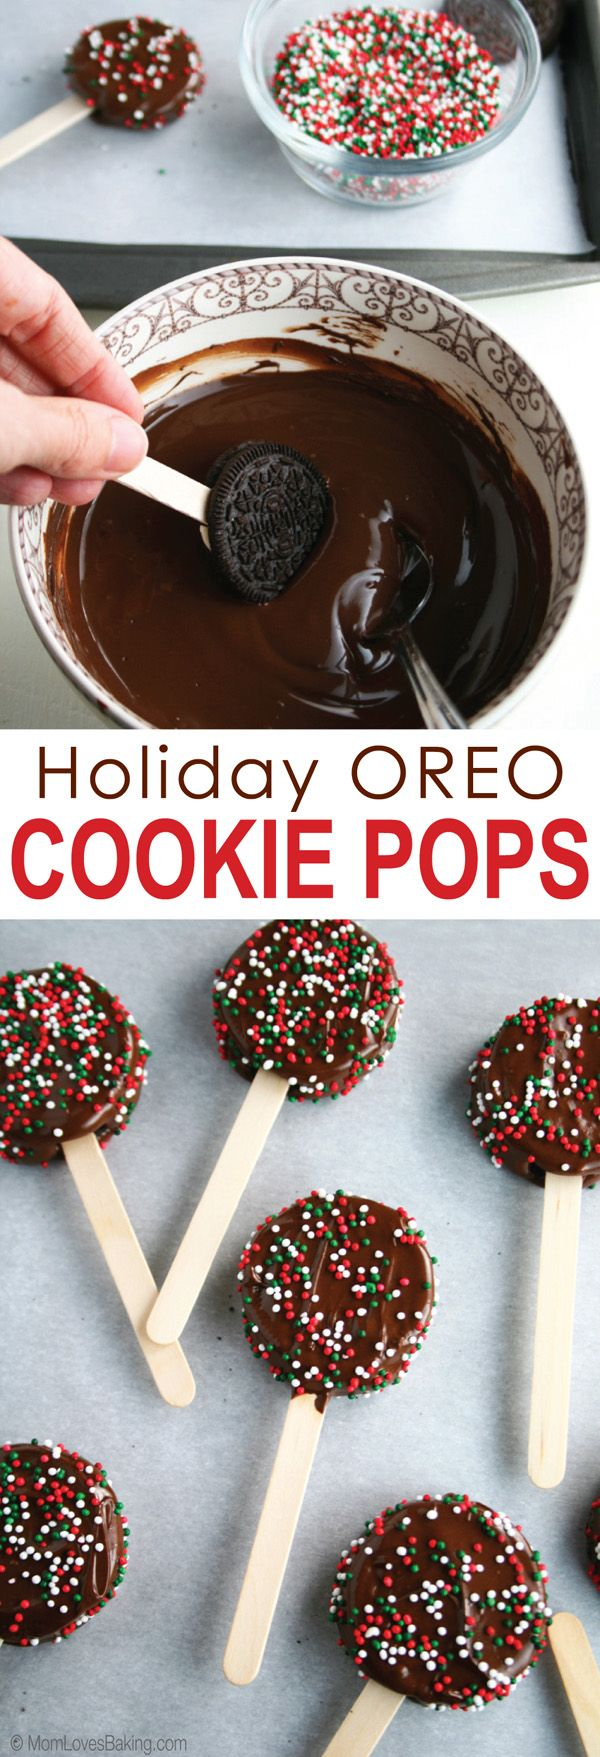 Holiday OREO Cookie Pops - Mom Loves Baking